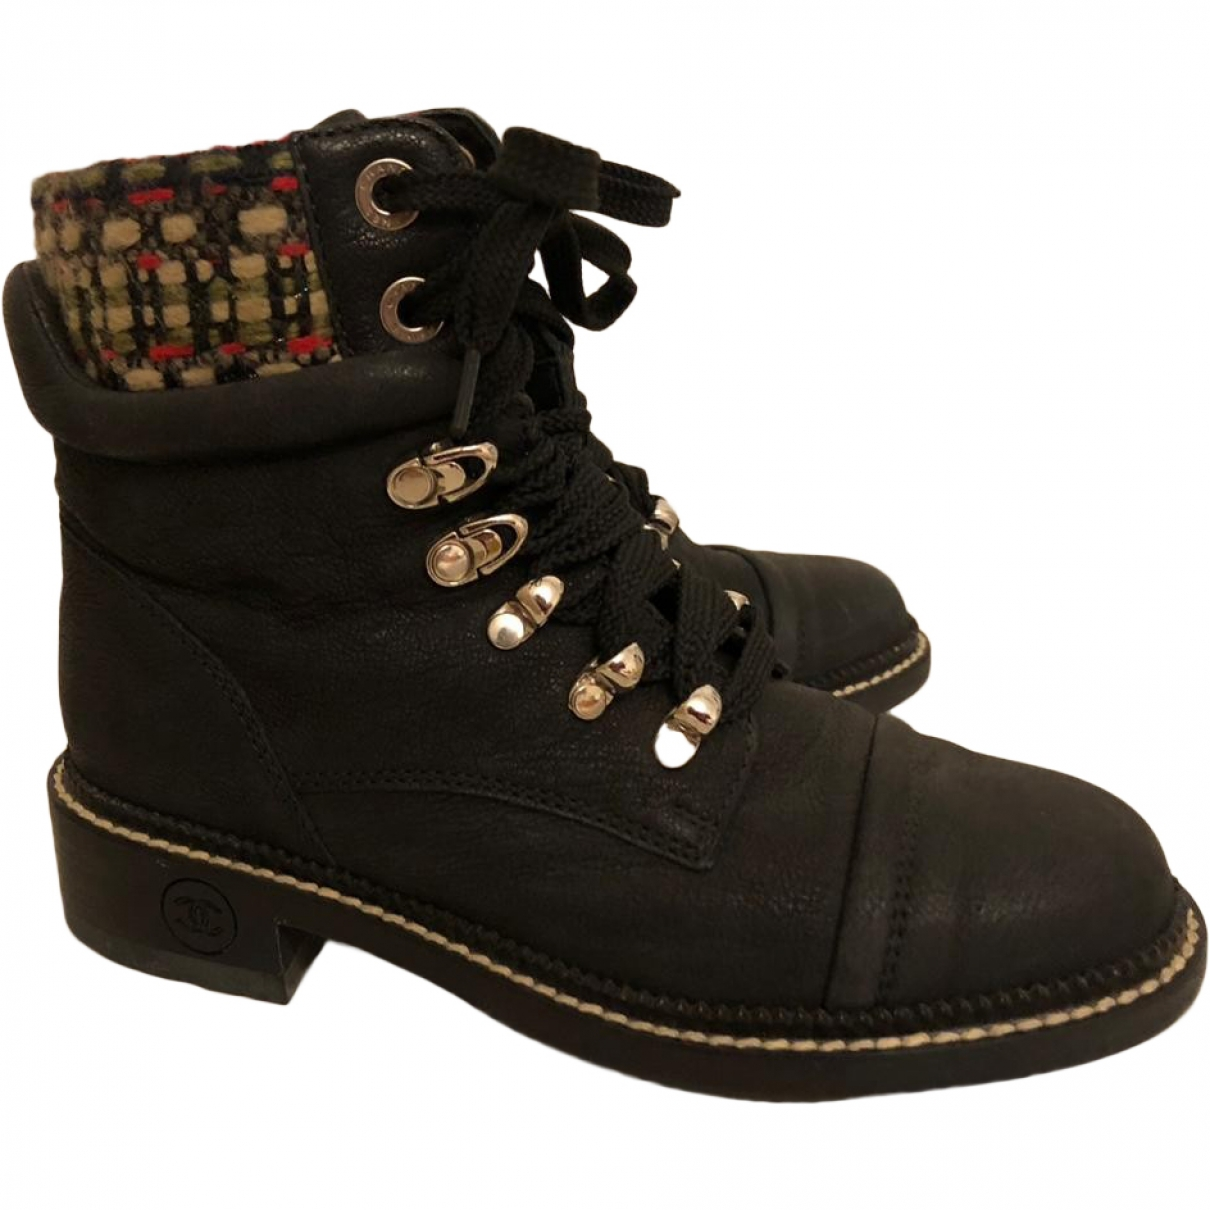 Chanel \N Black Leather Boots for Women 35 EU